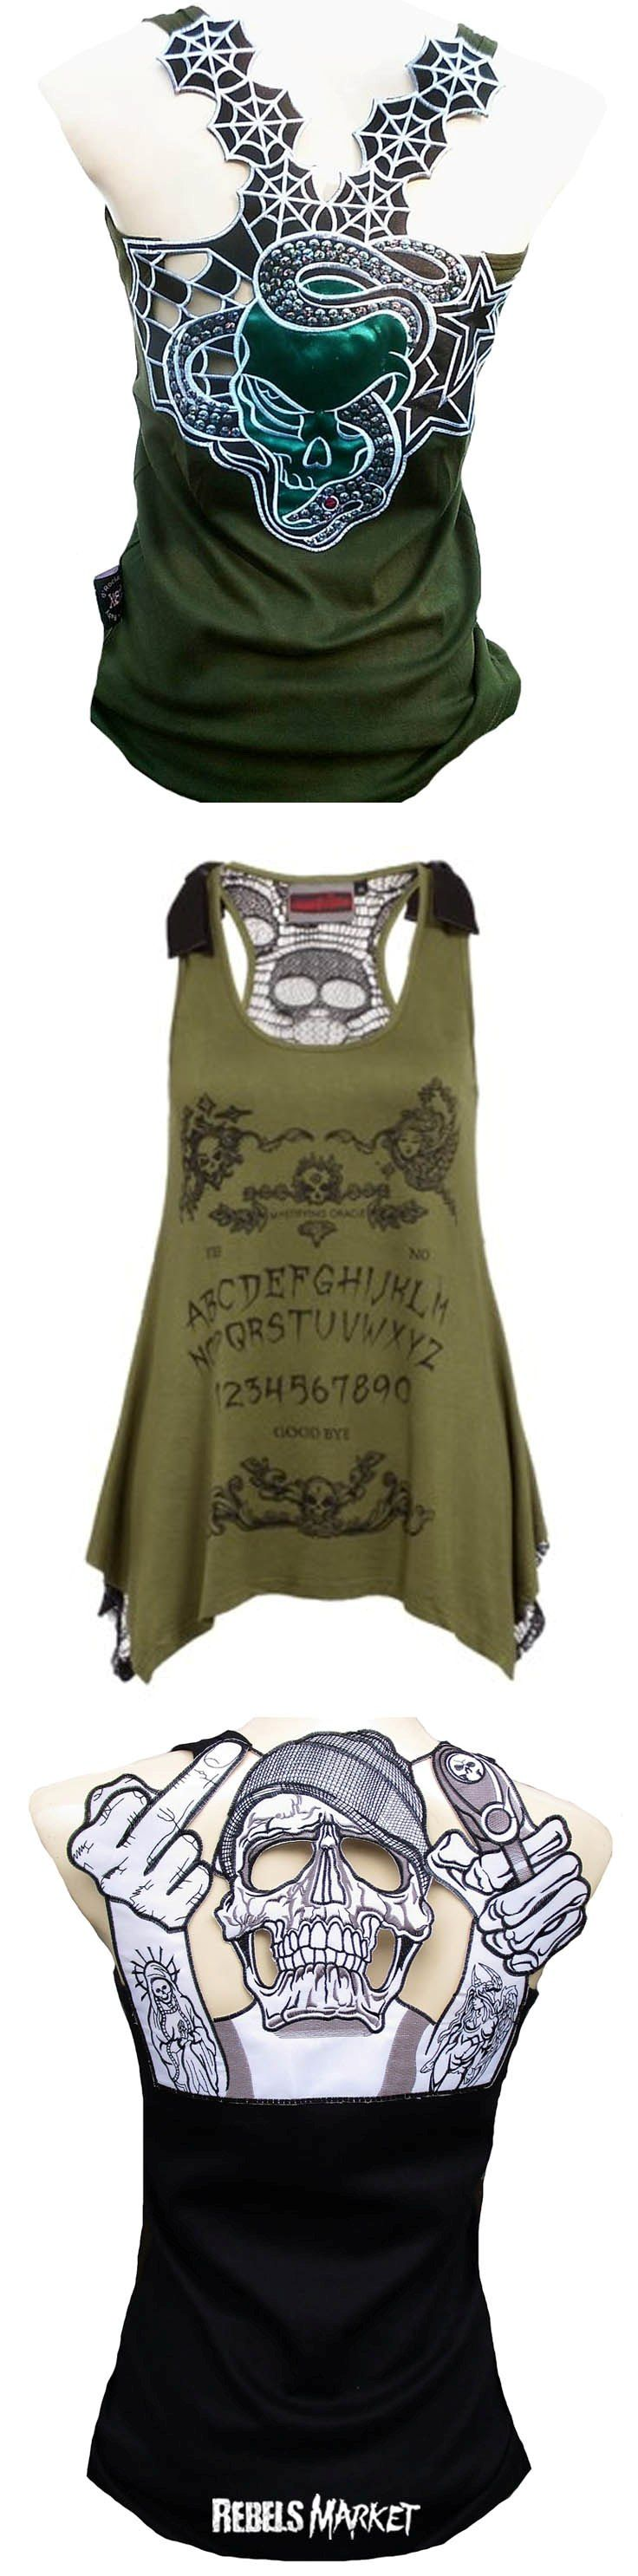 Shop women's punk tops at RebelsMarket!